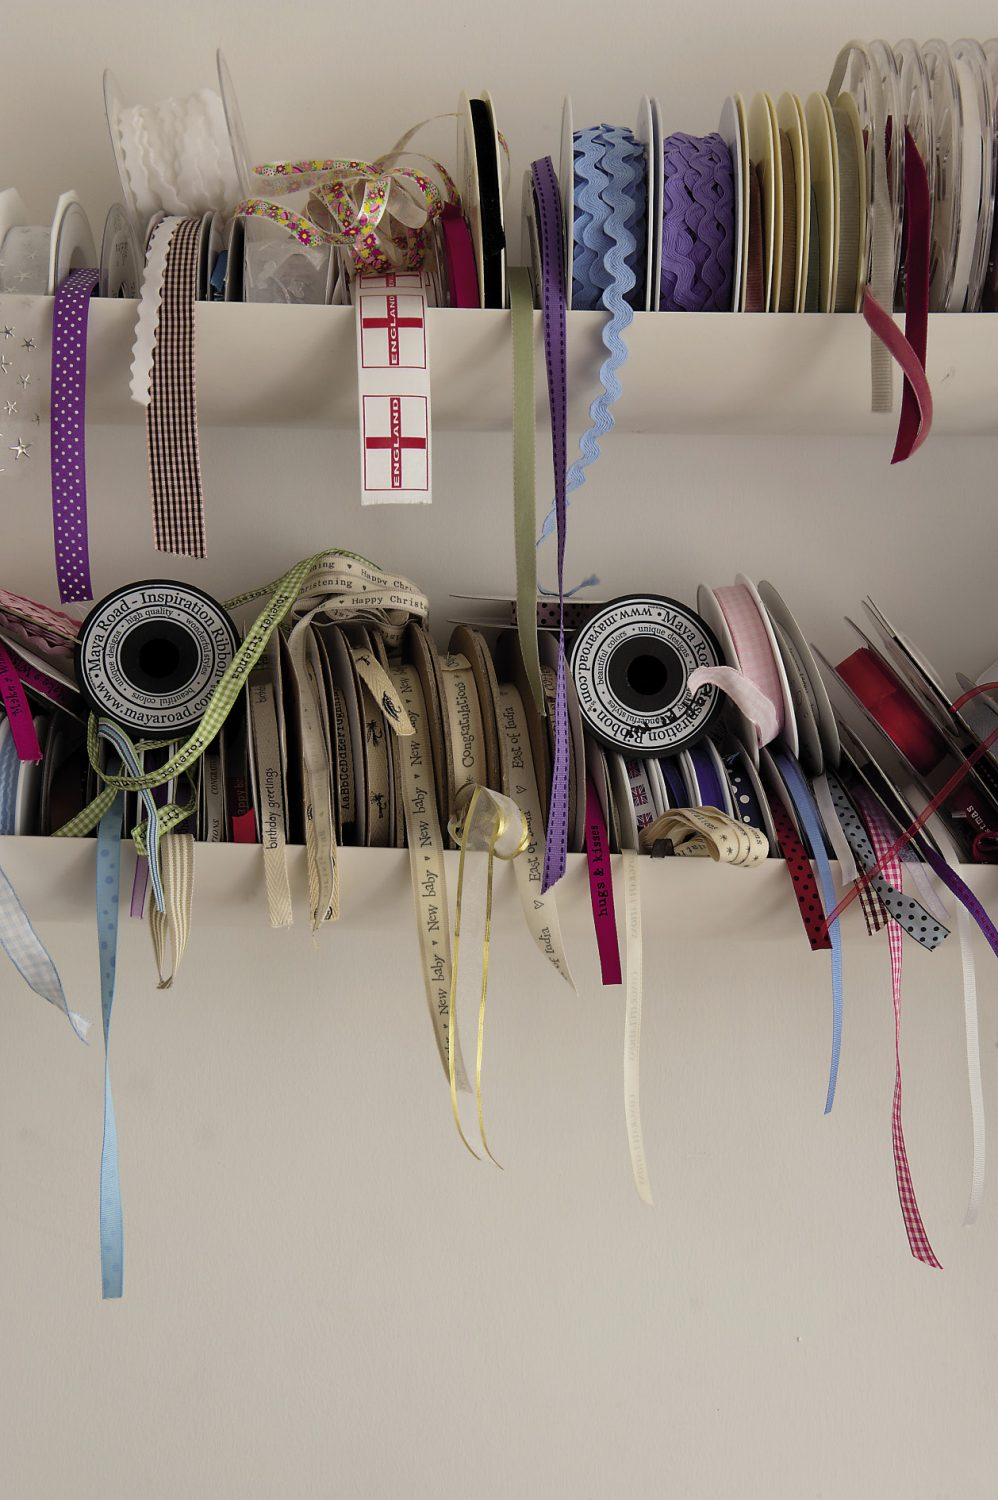 There's no shortage of pretty ribbons